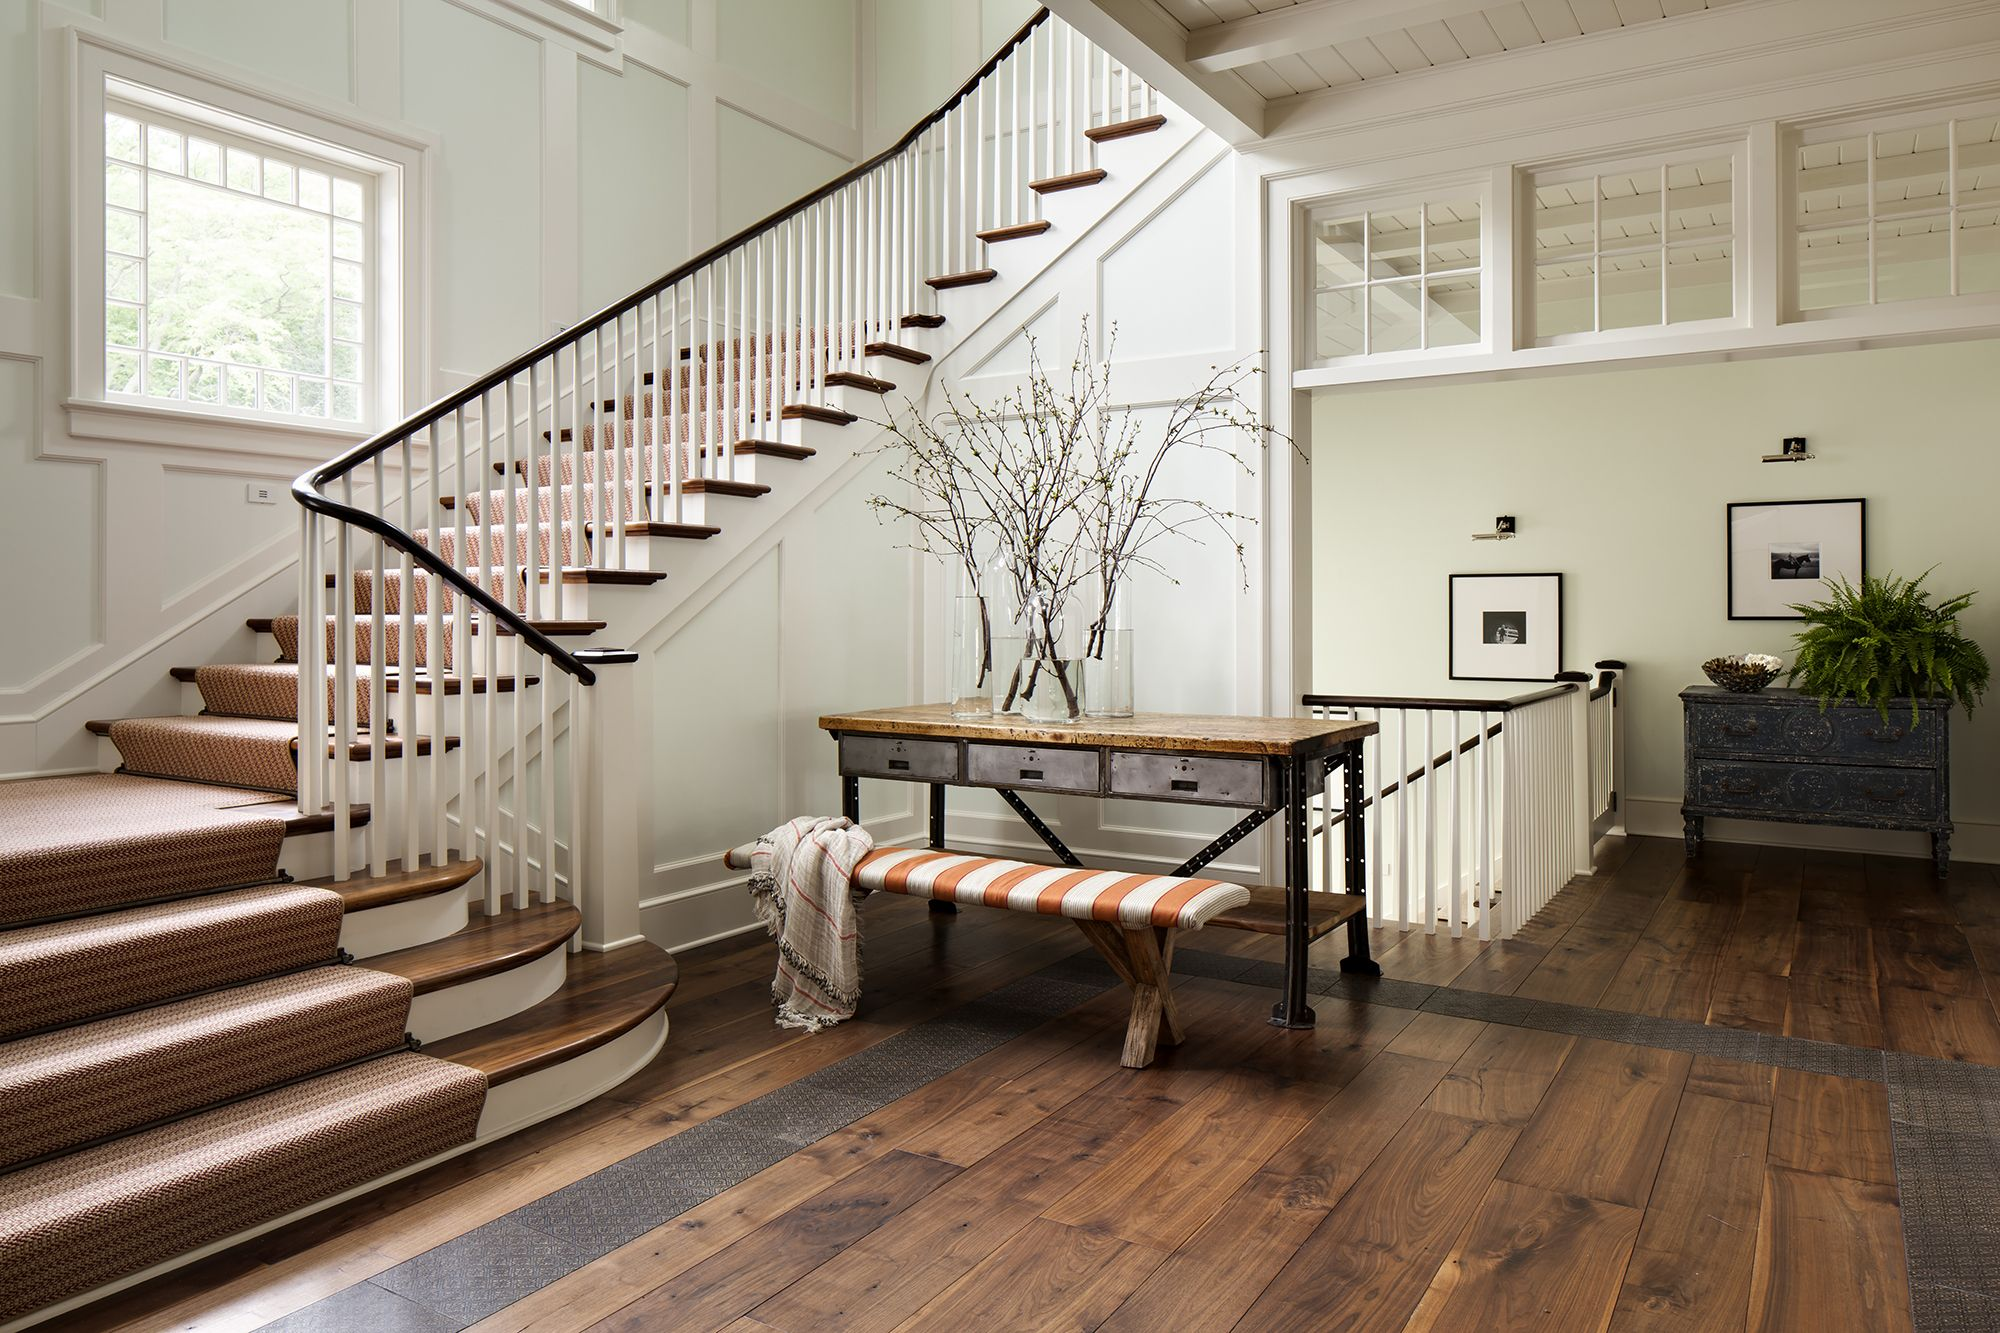 Interior Staircase Ideas 27 Stylish Staircase Decorating Ideas How To Decorate Stairways